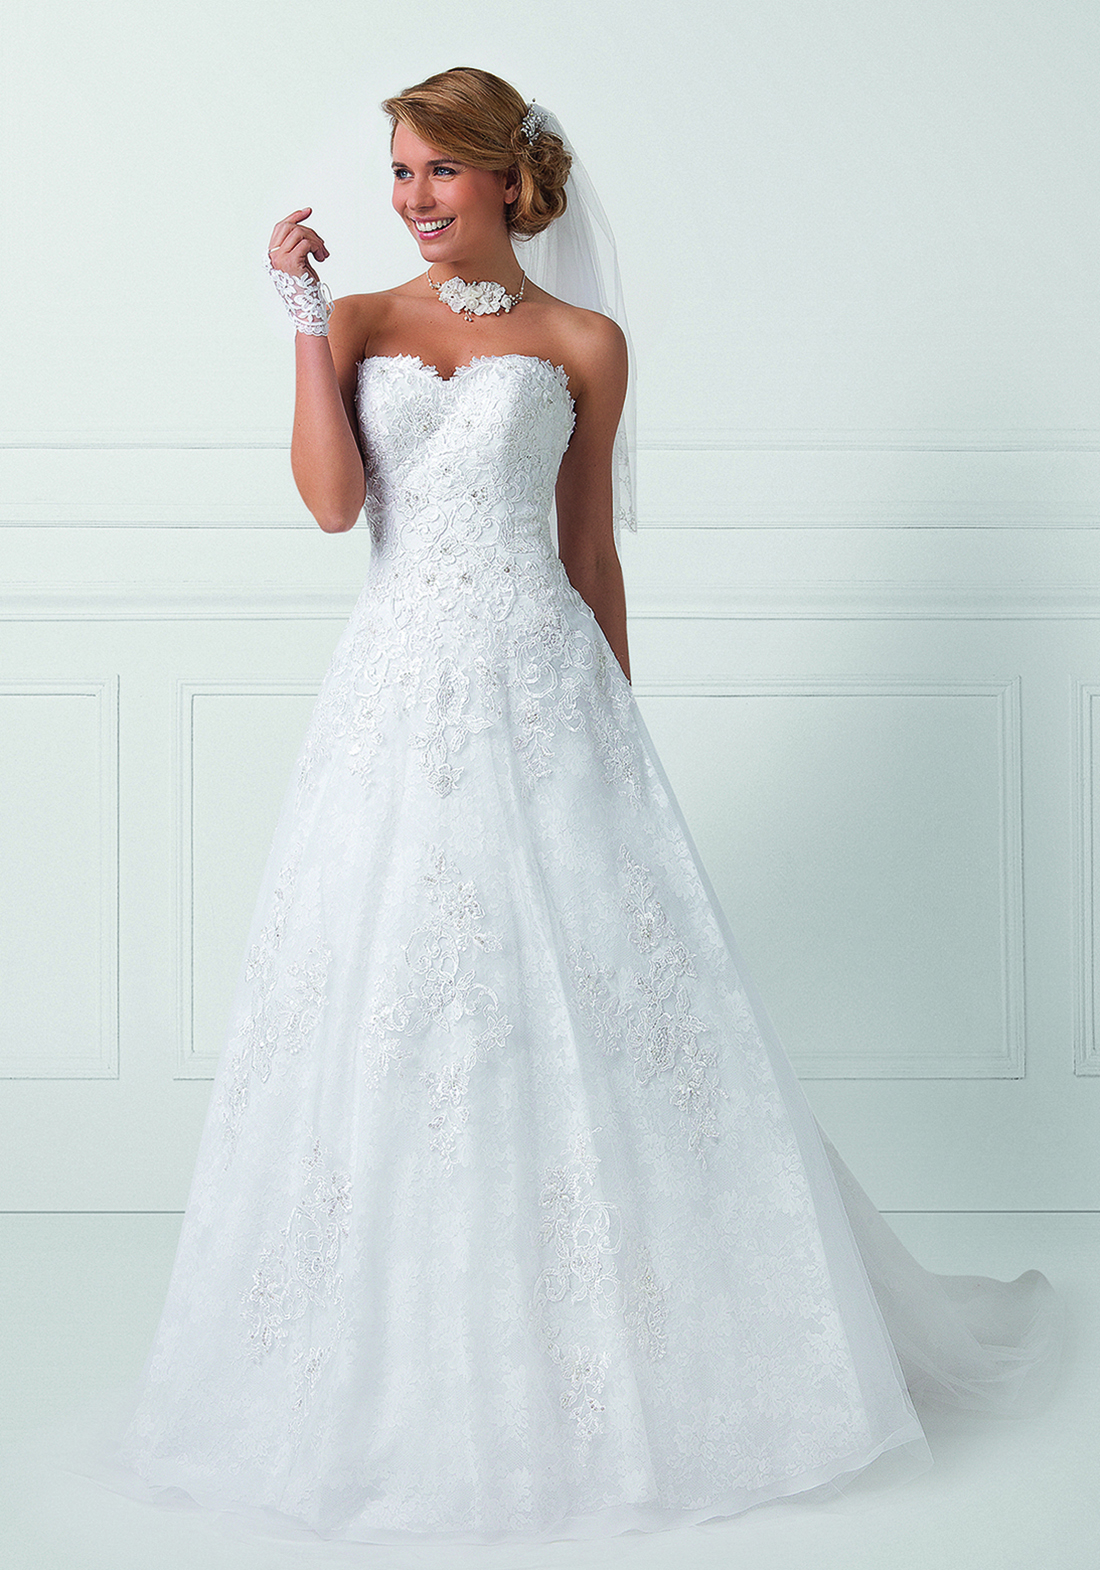 Collection Bella 2016 : Robe de mariée Royale